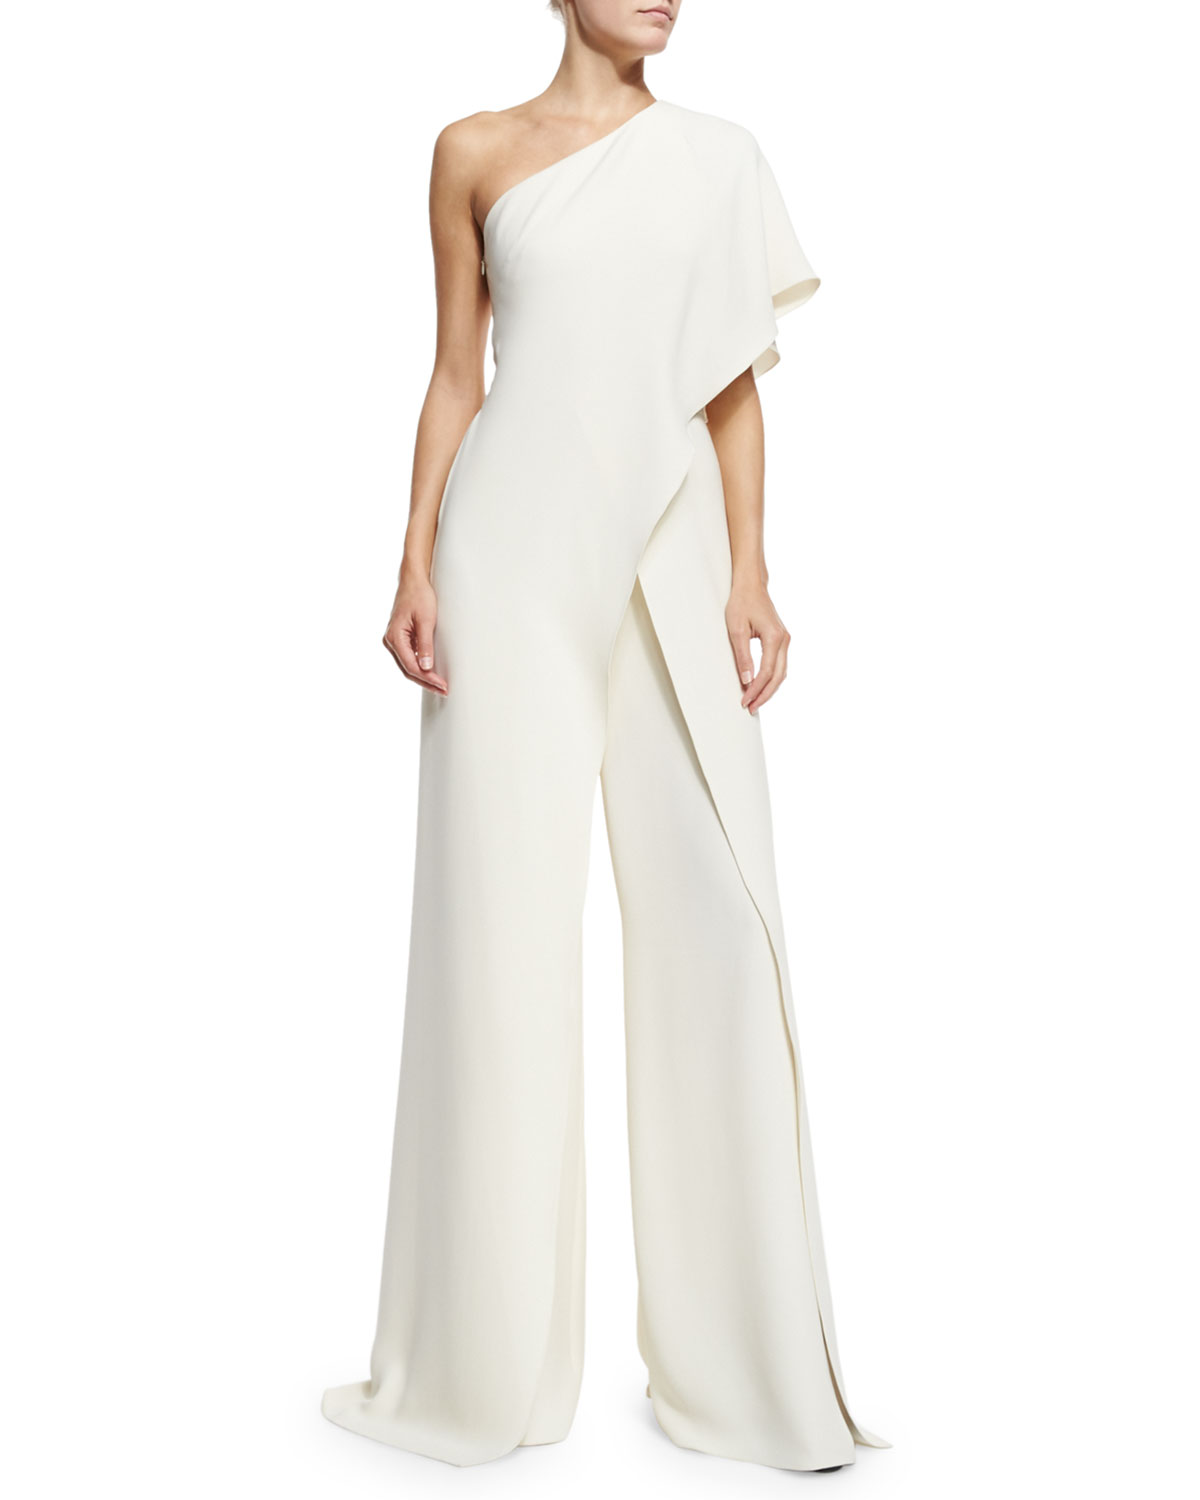 Ralph Lauren Collection One-Shoulder Silk Crepe Jumpsuit, Ivory, 4th of July 2017 outfit ideas by KOKET 4th of july outfit Chic 4th of July Outfit Ideas by KOKET BGW0FWB mz